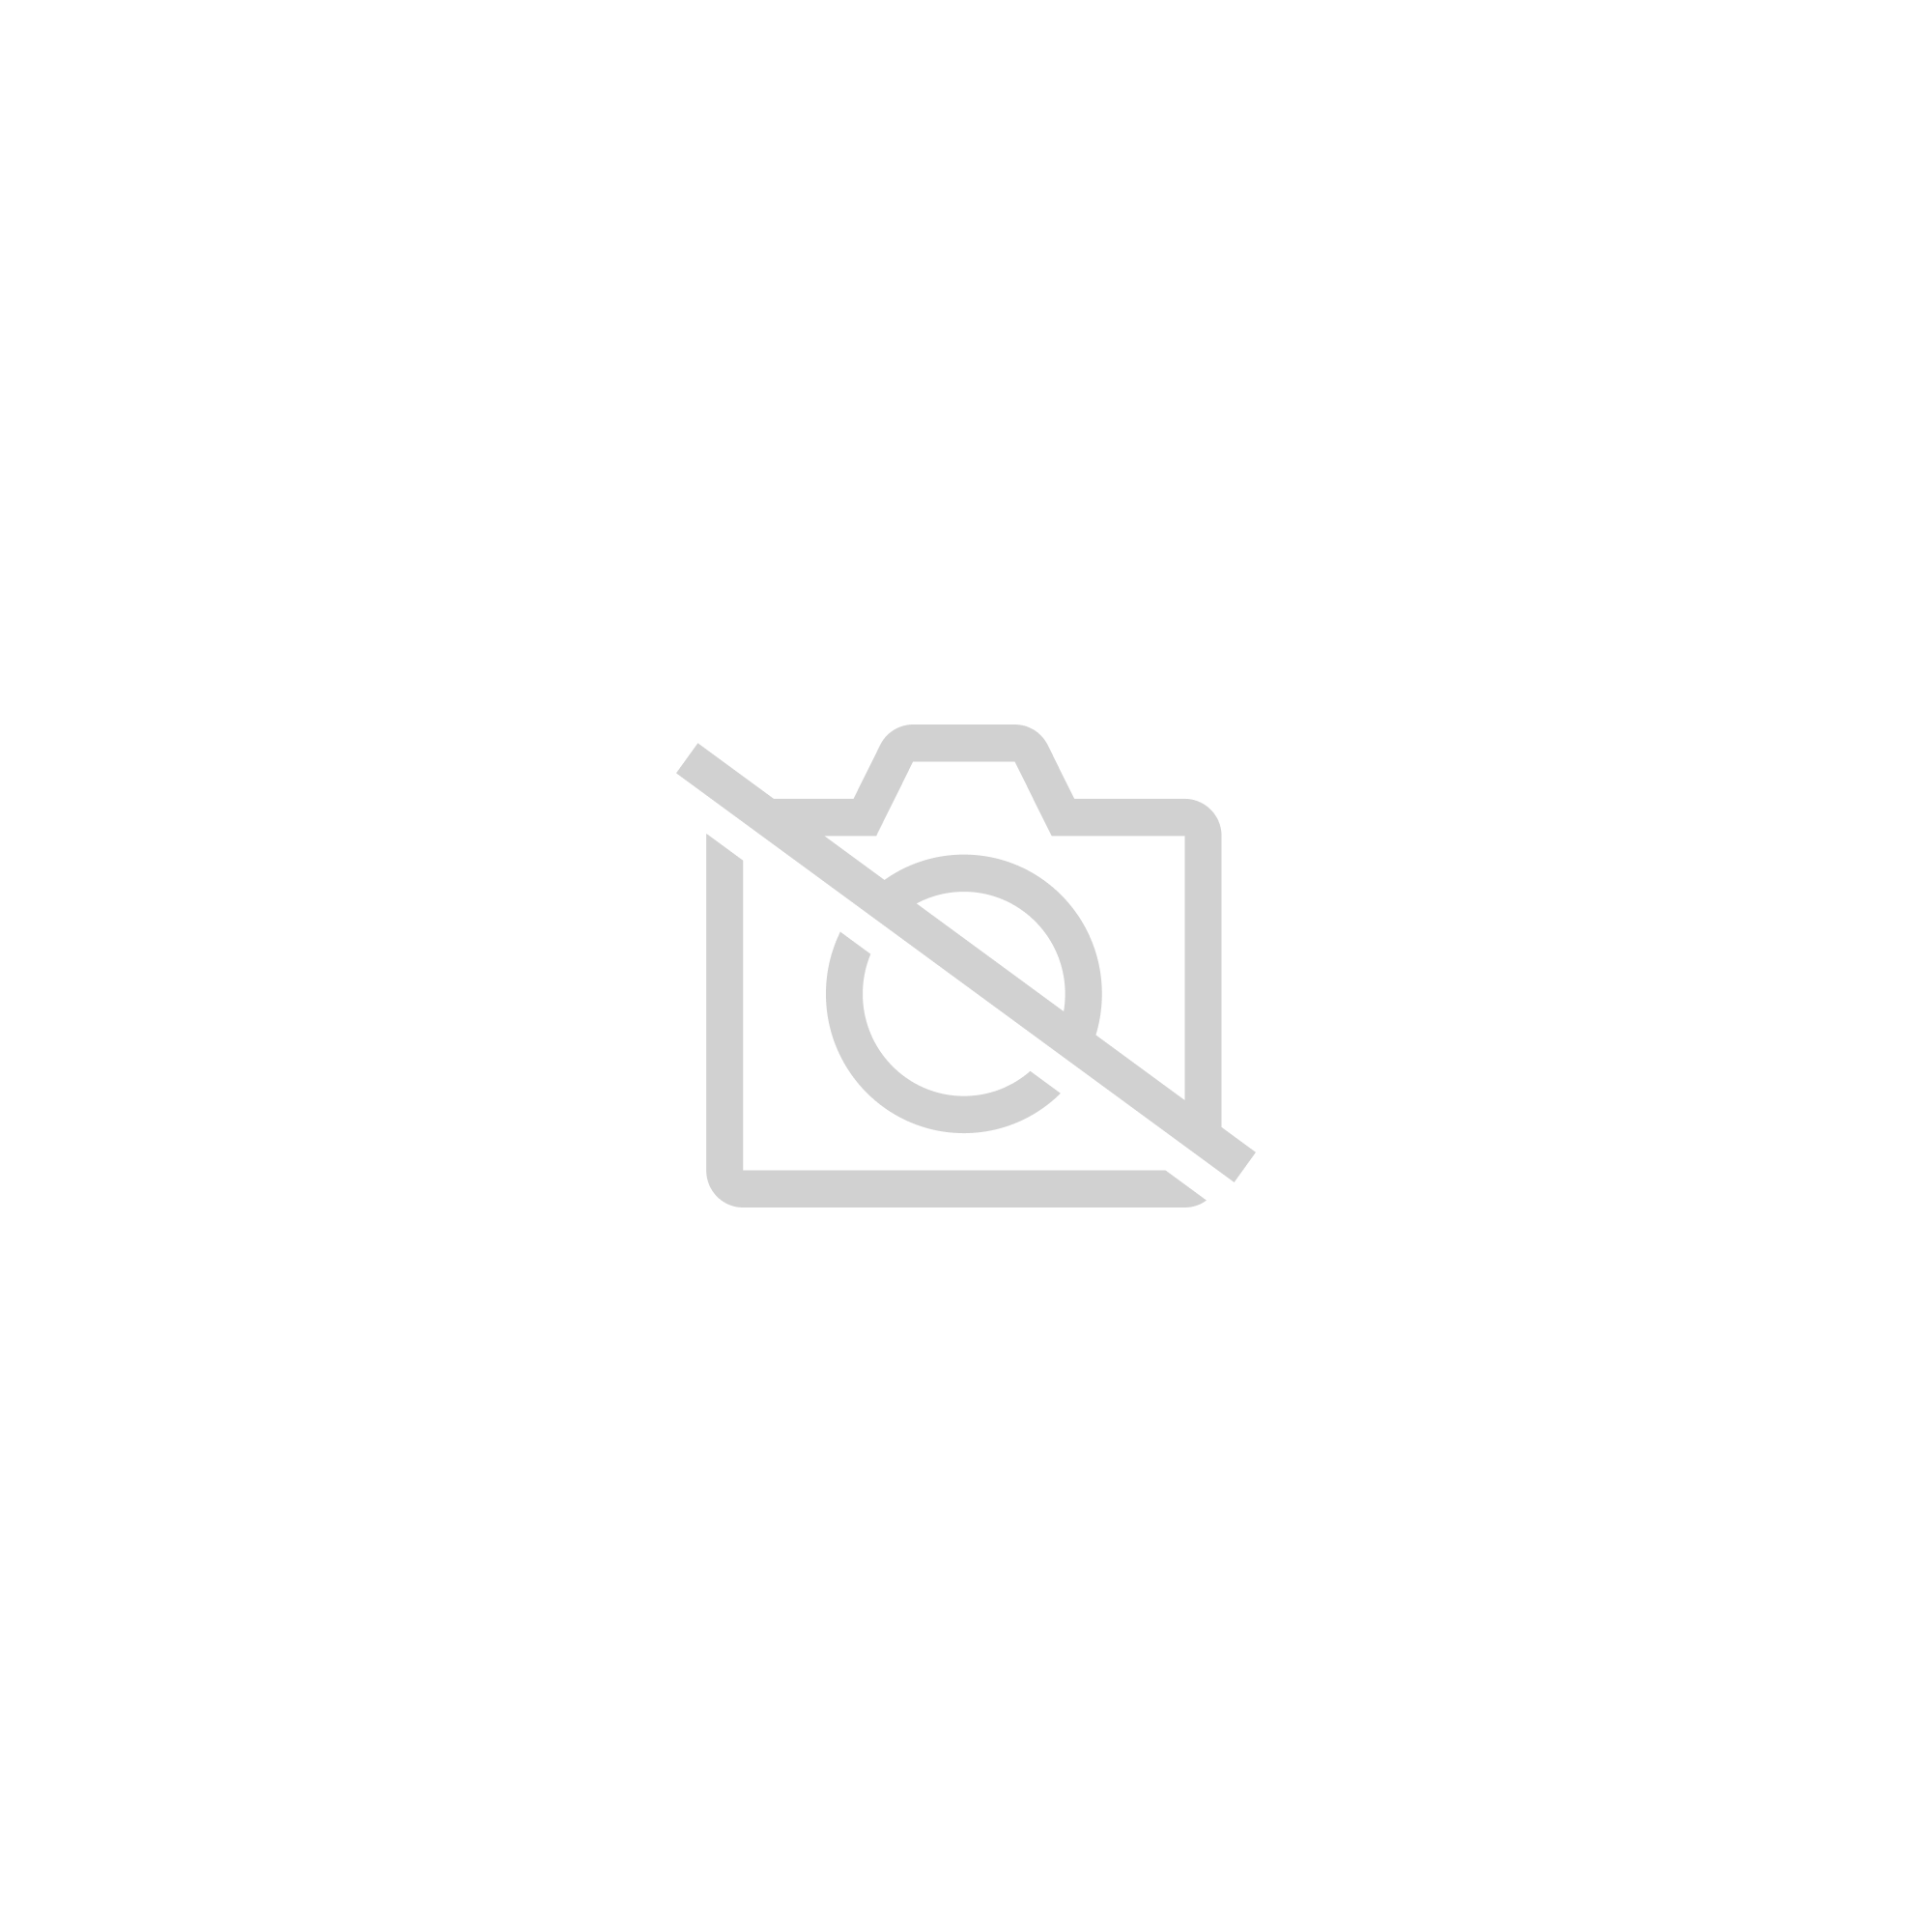 0805bb7649ca3 Lonsdale Heavy Zip Sweat À Capuche Sweatchirt Top Manche Longue Hommes